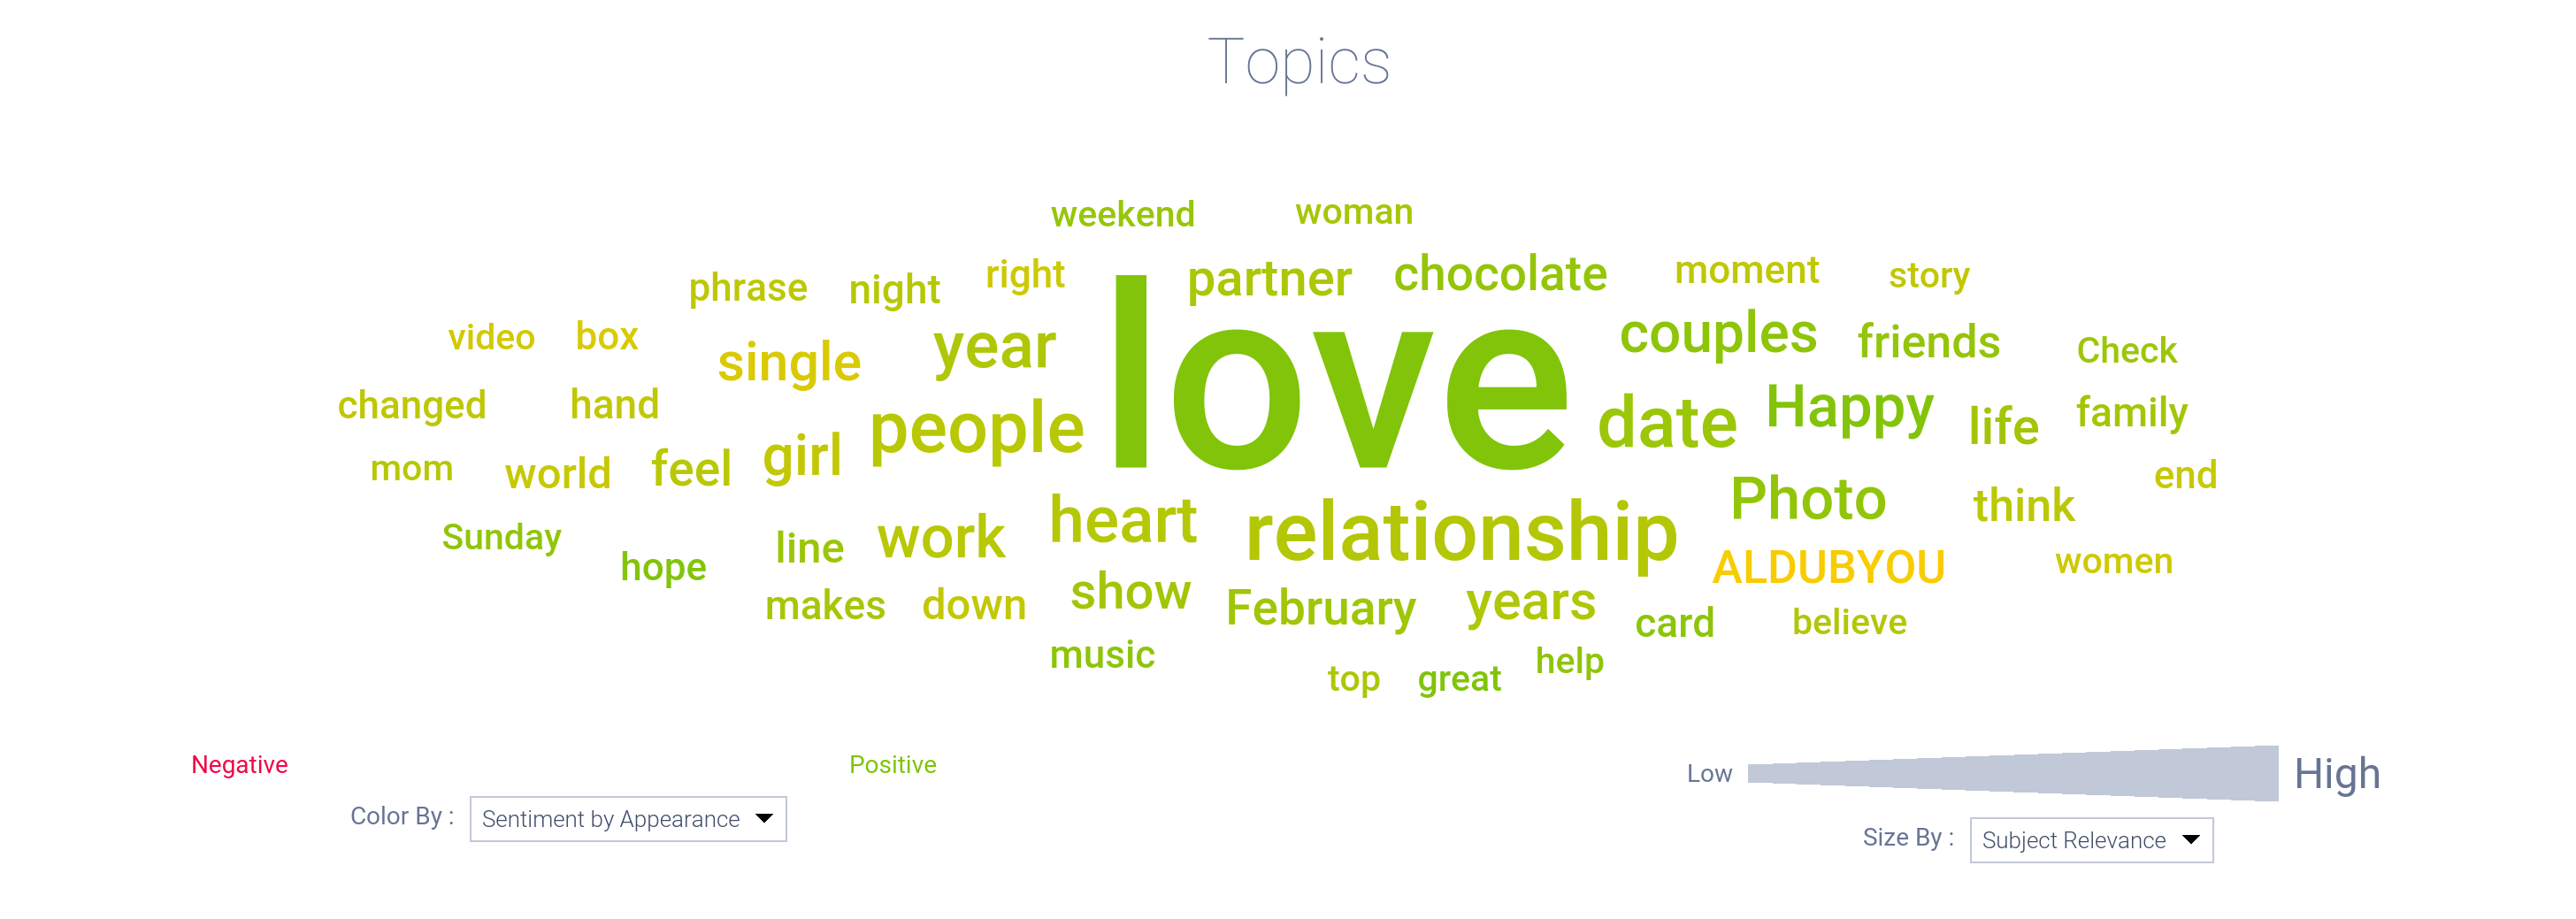 valentines-day_topics.png